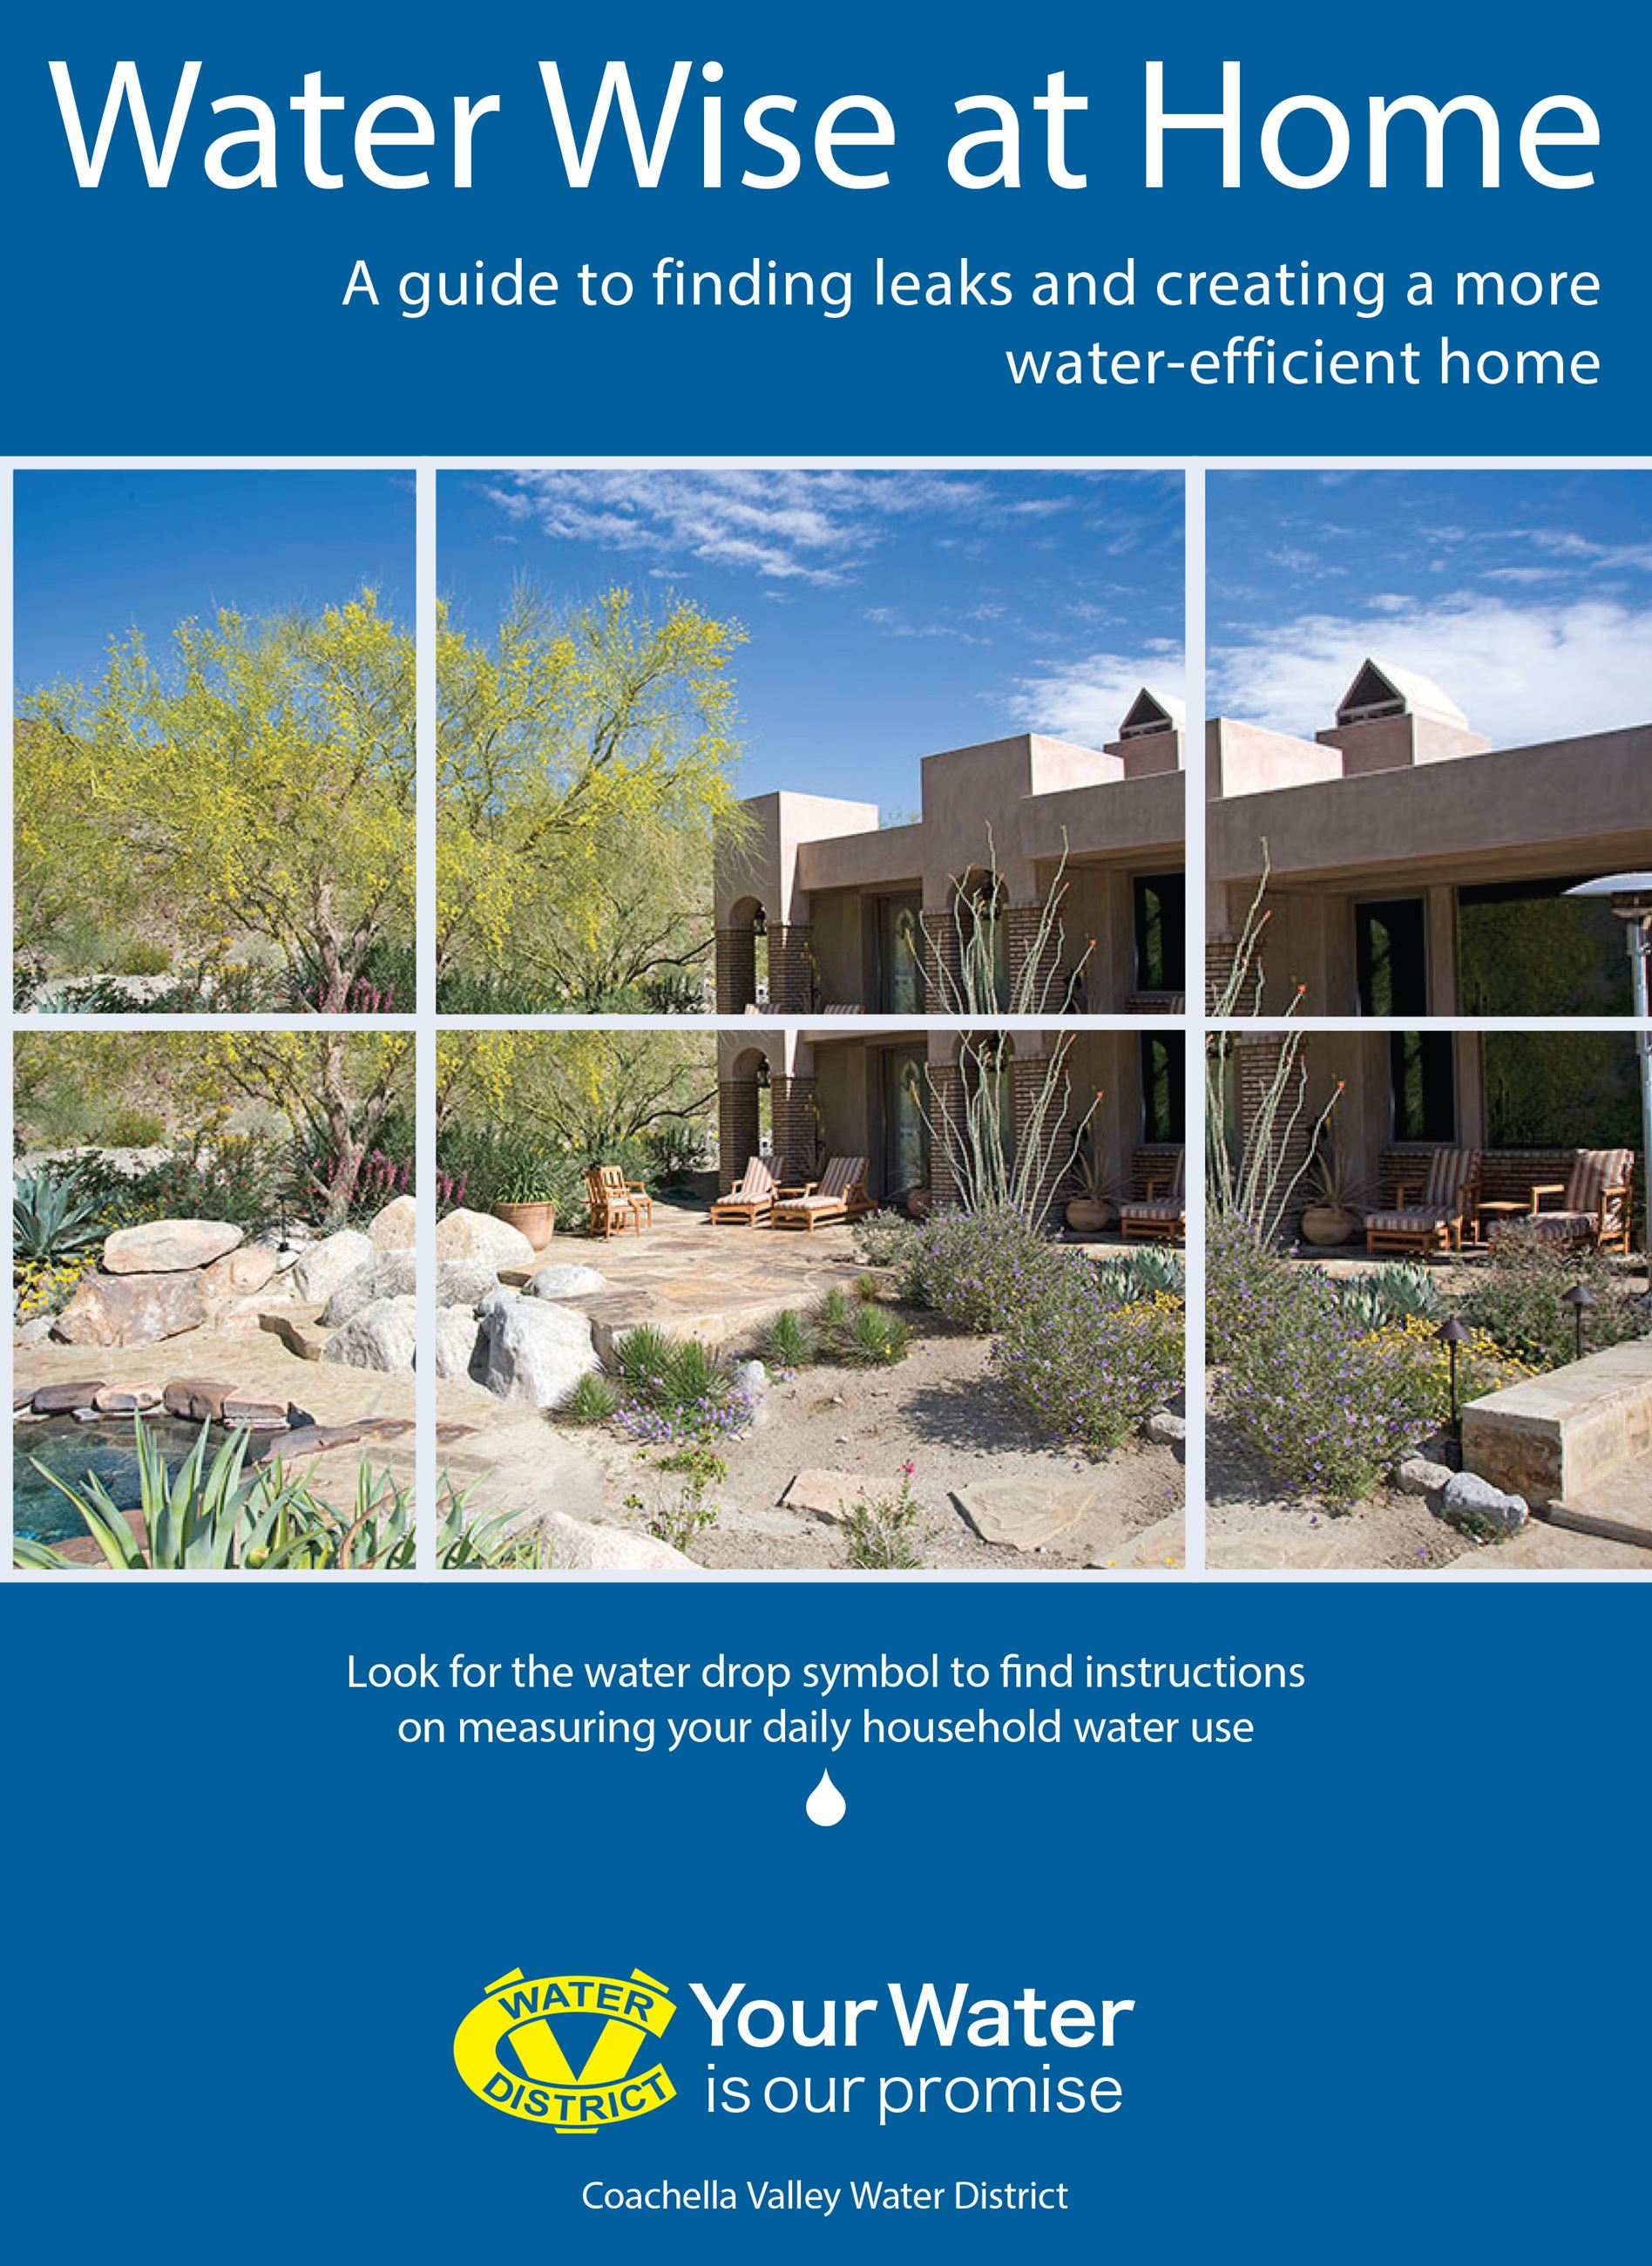 Water Wise At Home A guide to finding leaks brochure cover Opens in new window